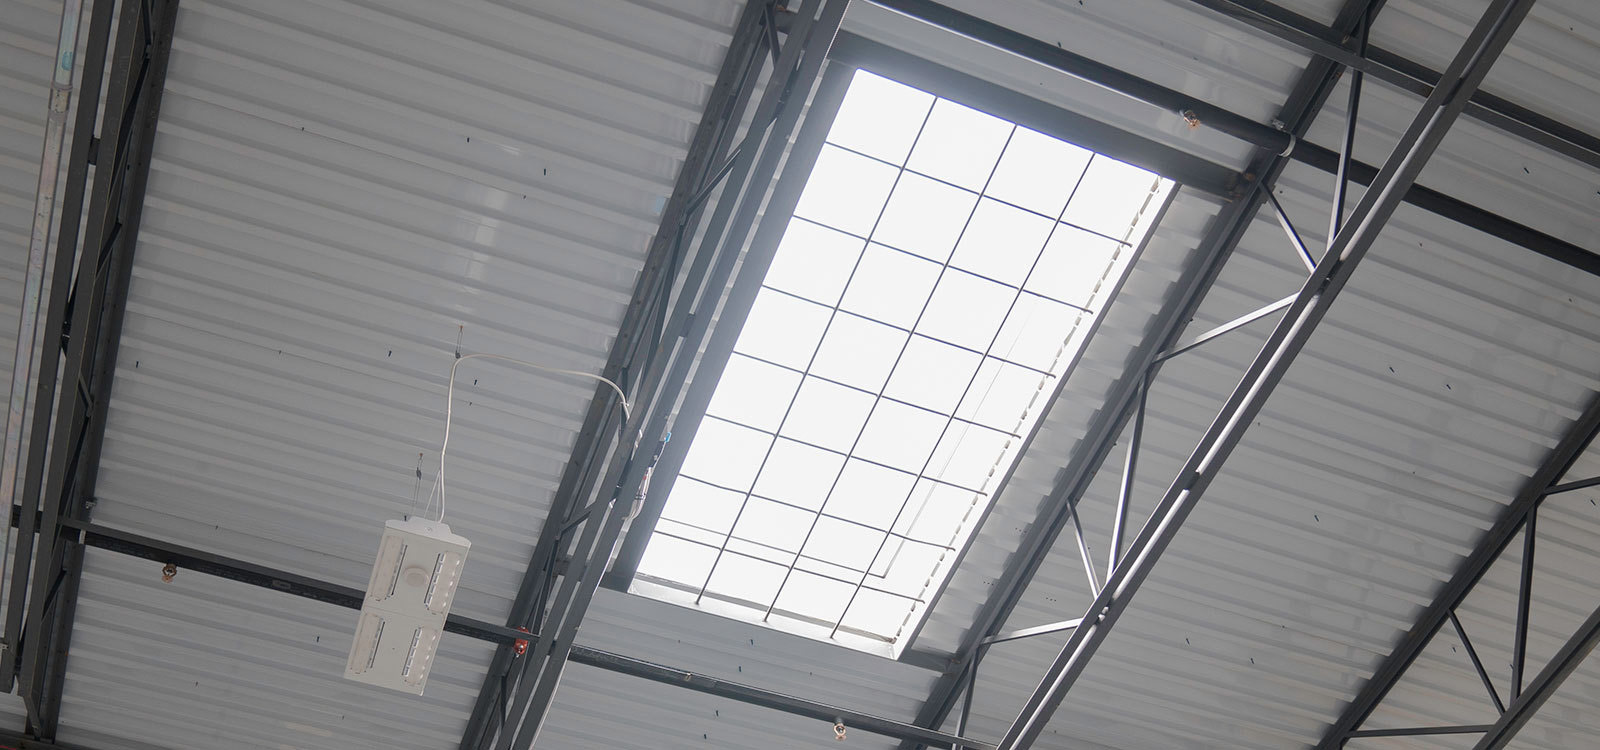 Gallery-fallprotection-1-1600x750